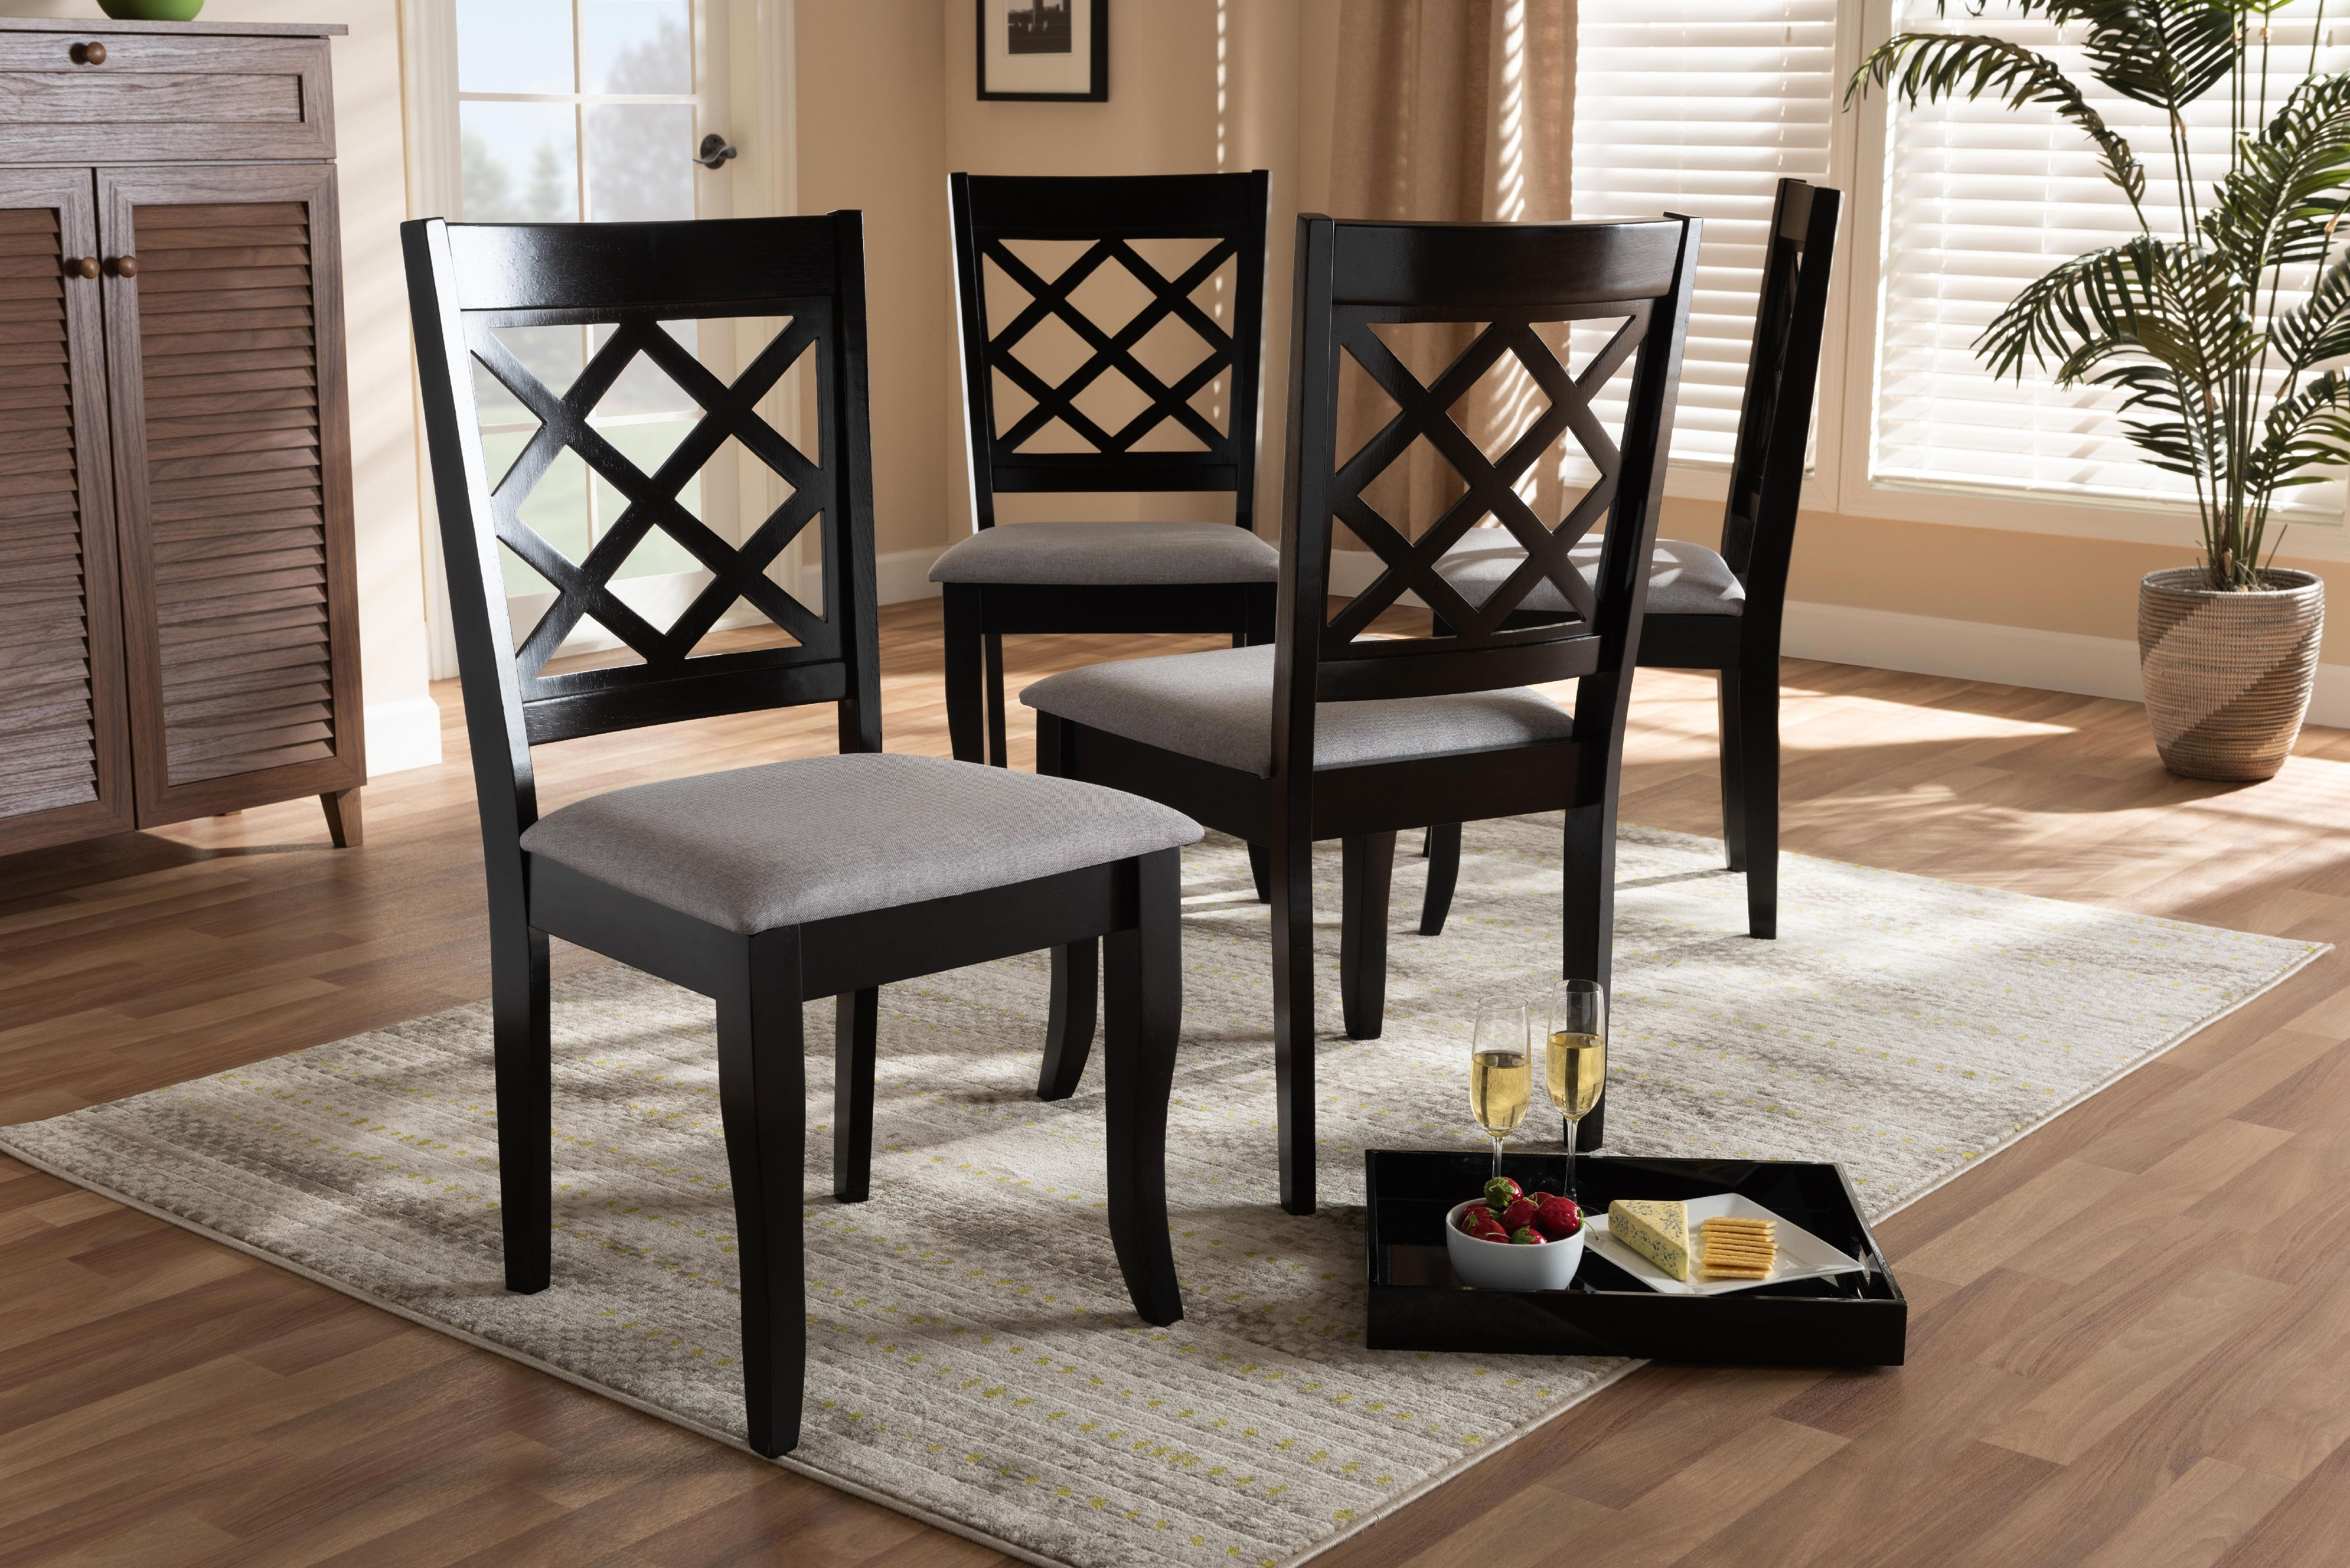 Set Of 4 Baxton Studio Verner Modern And Contemporary Grey Fabric Upholstered Espresso Brown Finished Wood Dining Chair Walmart Com Walmart Com